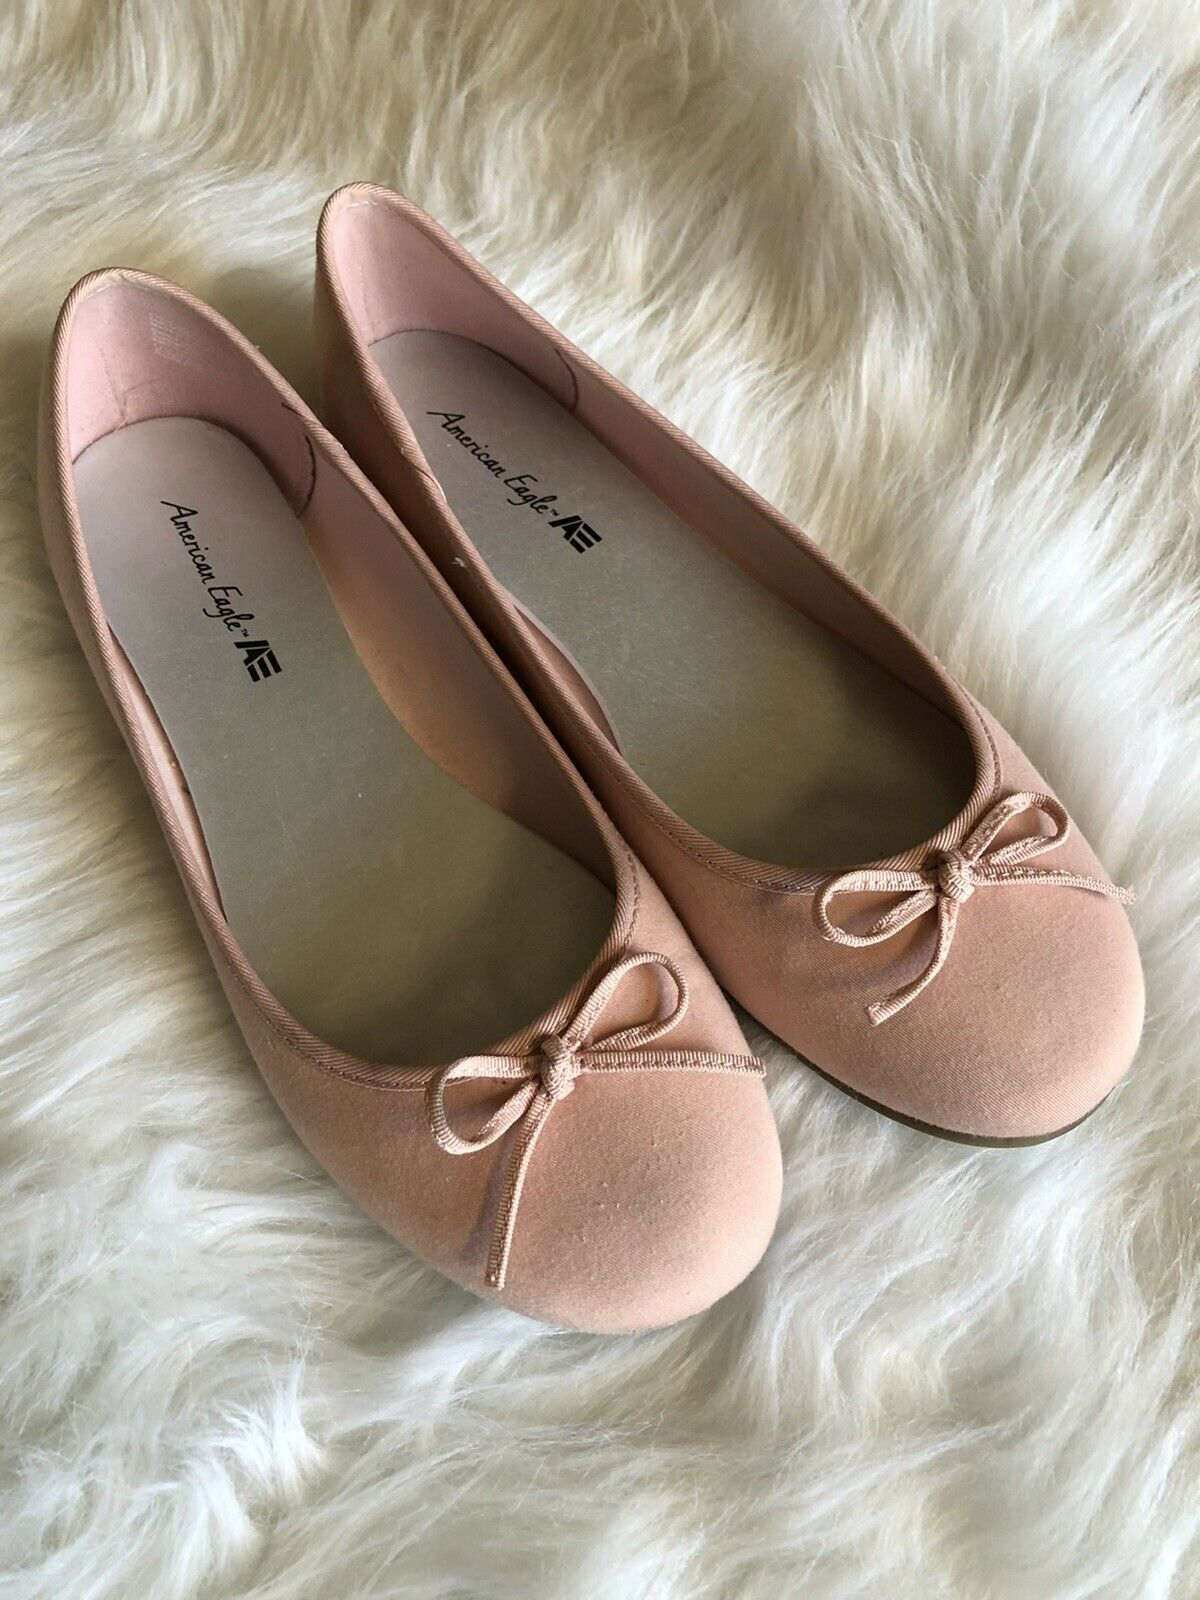 WOMEN'S AMERICAN EAGLE FLATS Blush PINK BALLET STYLE SHOES SIZE 7 FABRIC UPPERS